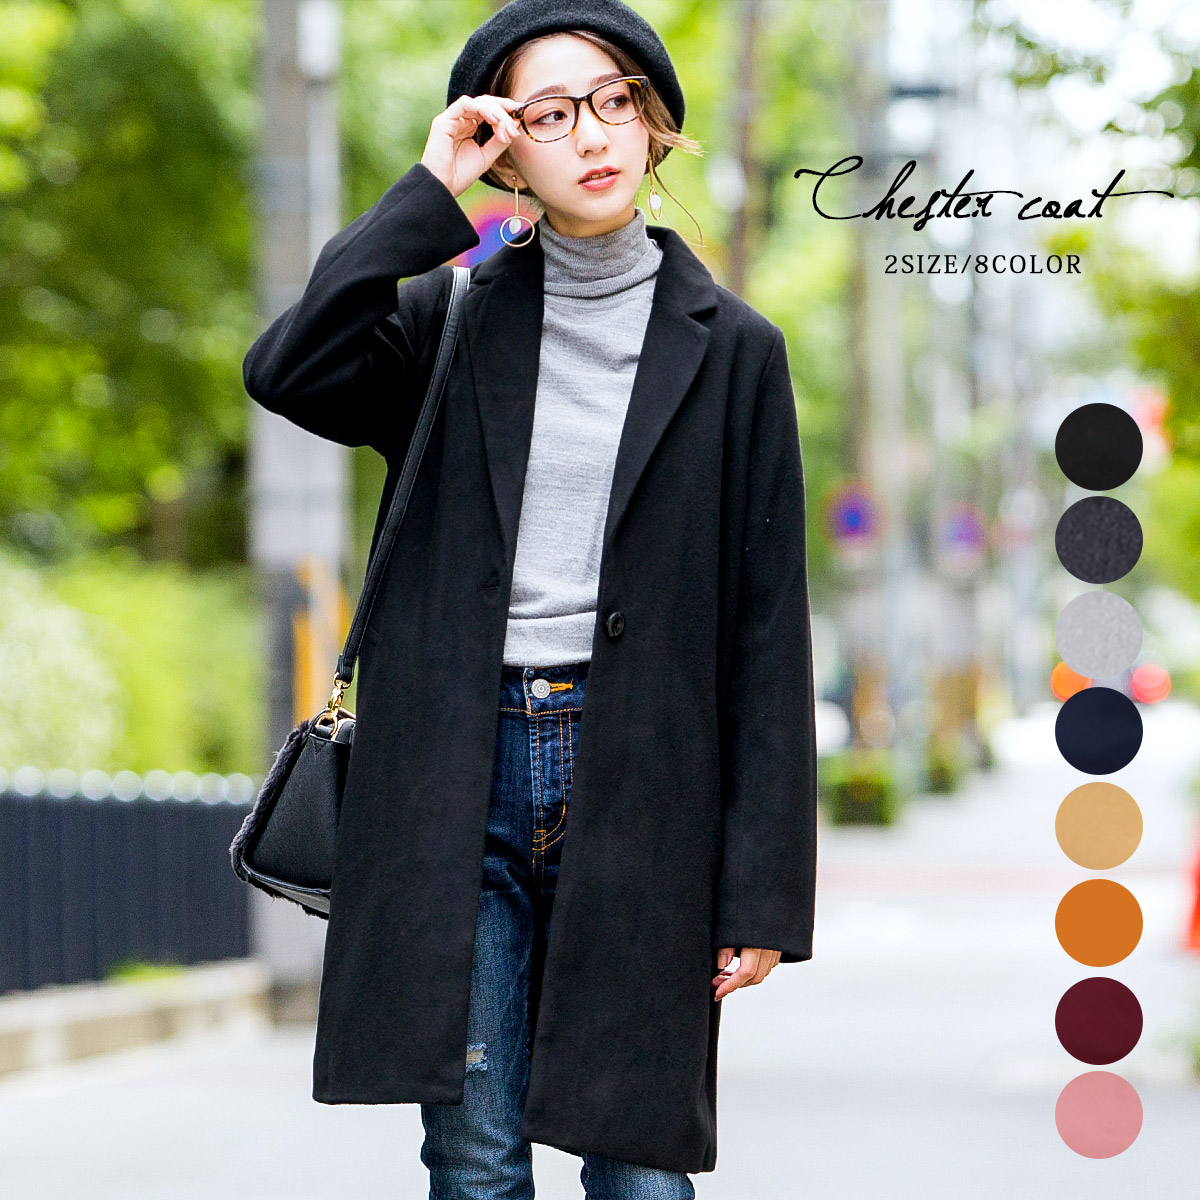 bad7f3f601e63 Chester court ladies clothing winter Chester coat long coat autumn clothes  winter wear her grey camel ...